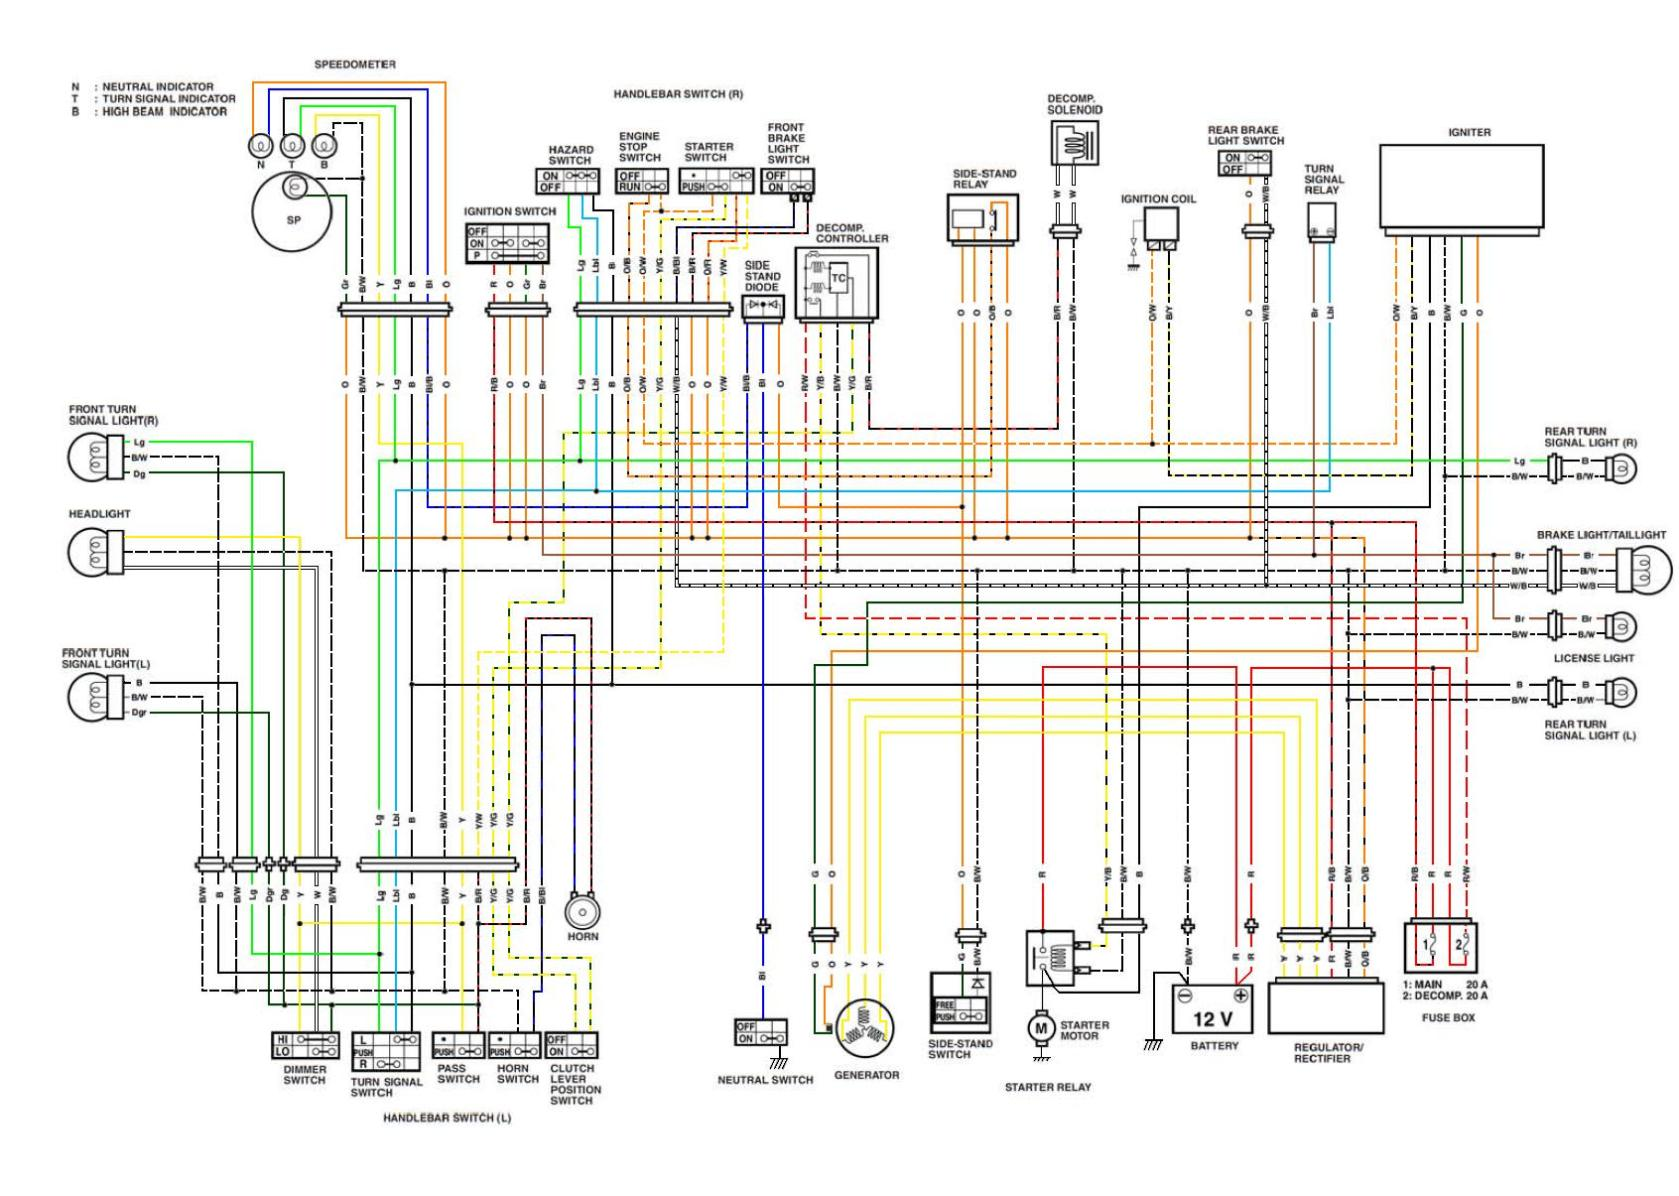 2007 sportster wiring diagram 2007 auto wiring diagram schematic fx 2009 sportster wiring diagram fx auto wiring diagram schematic on 2007 sportster wiring diagram